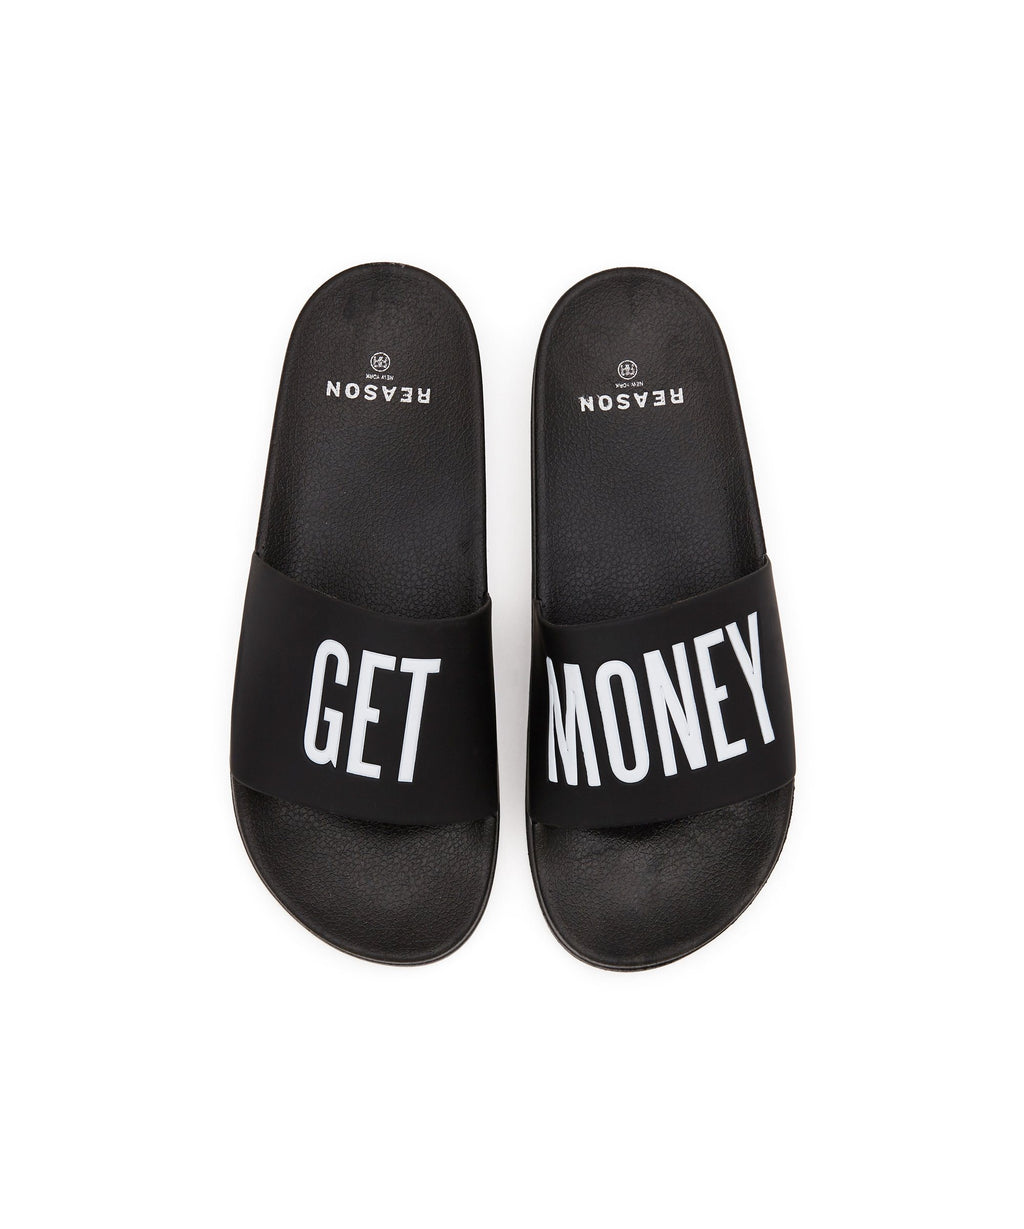 Get Money Slides